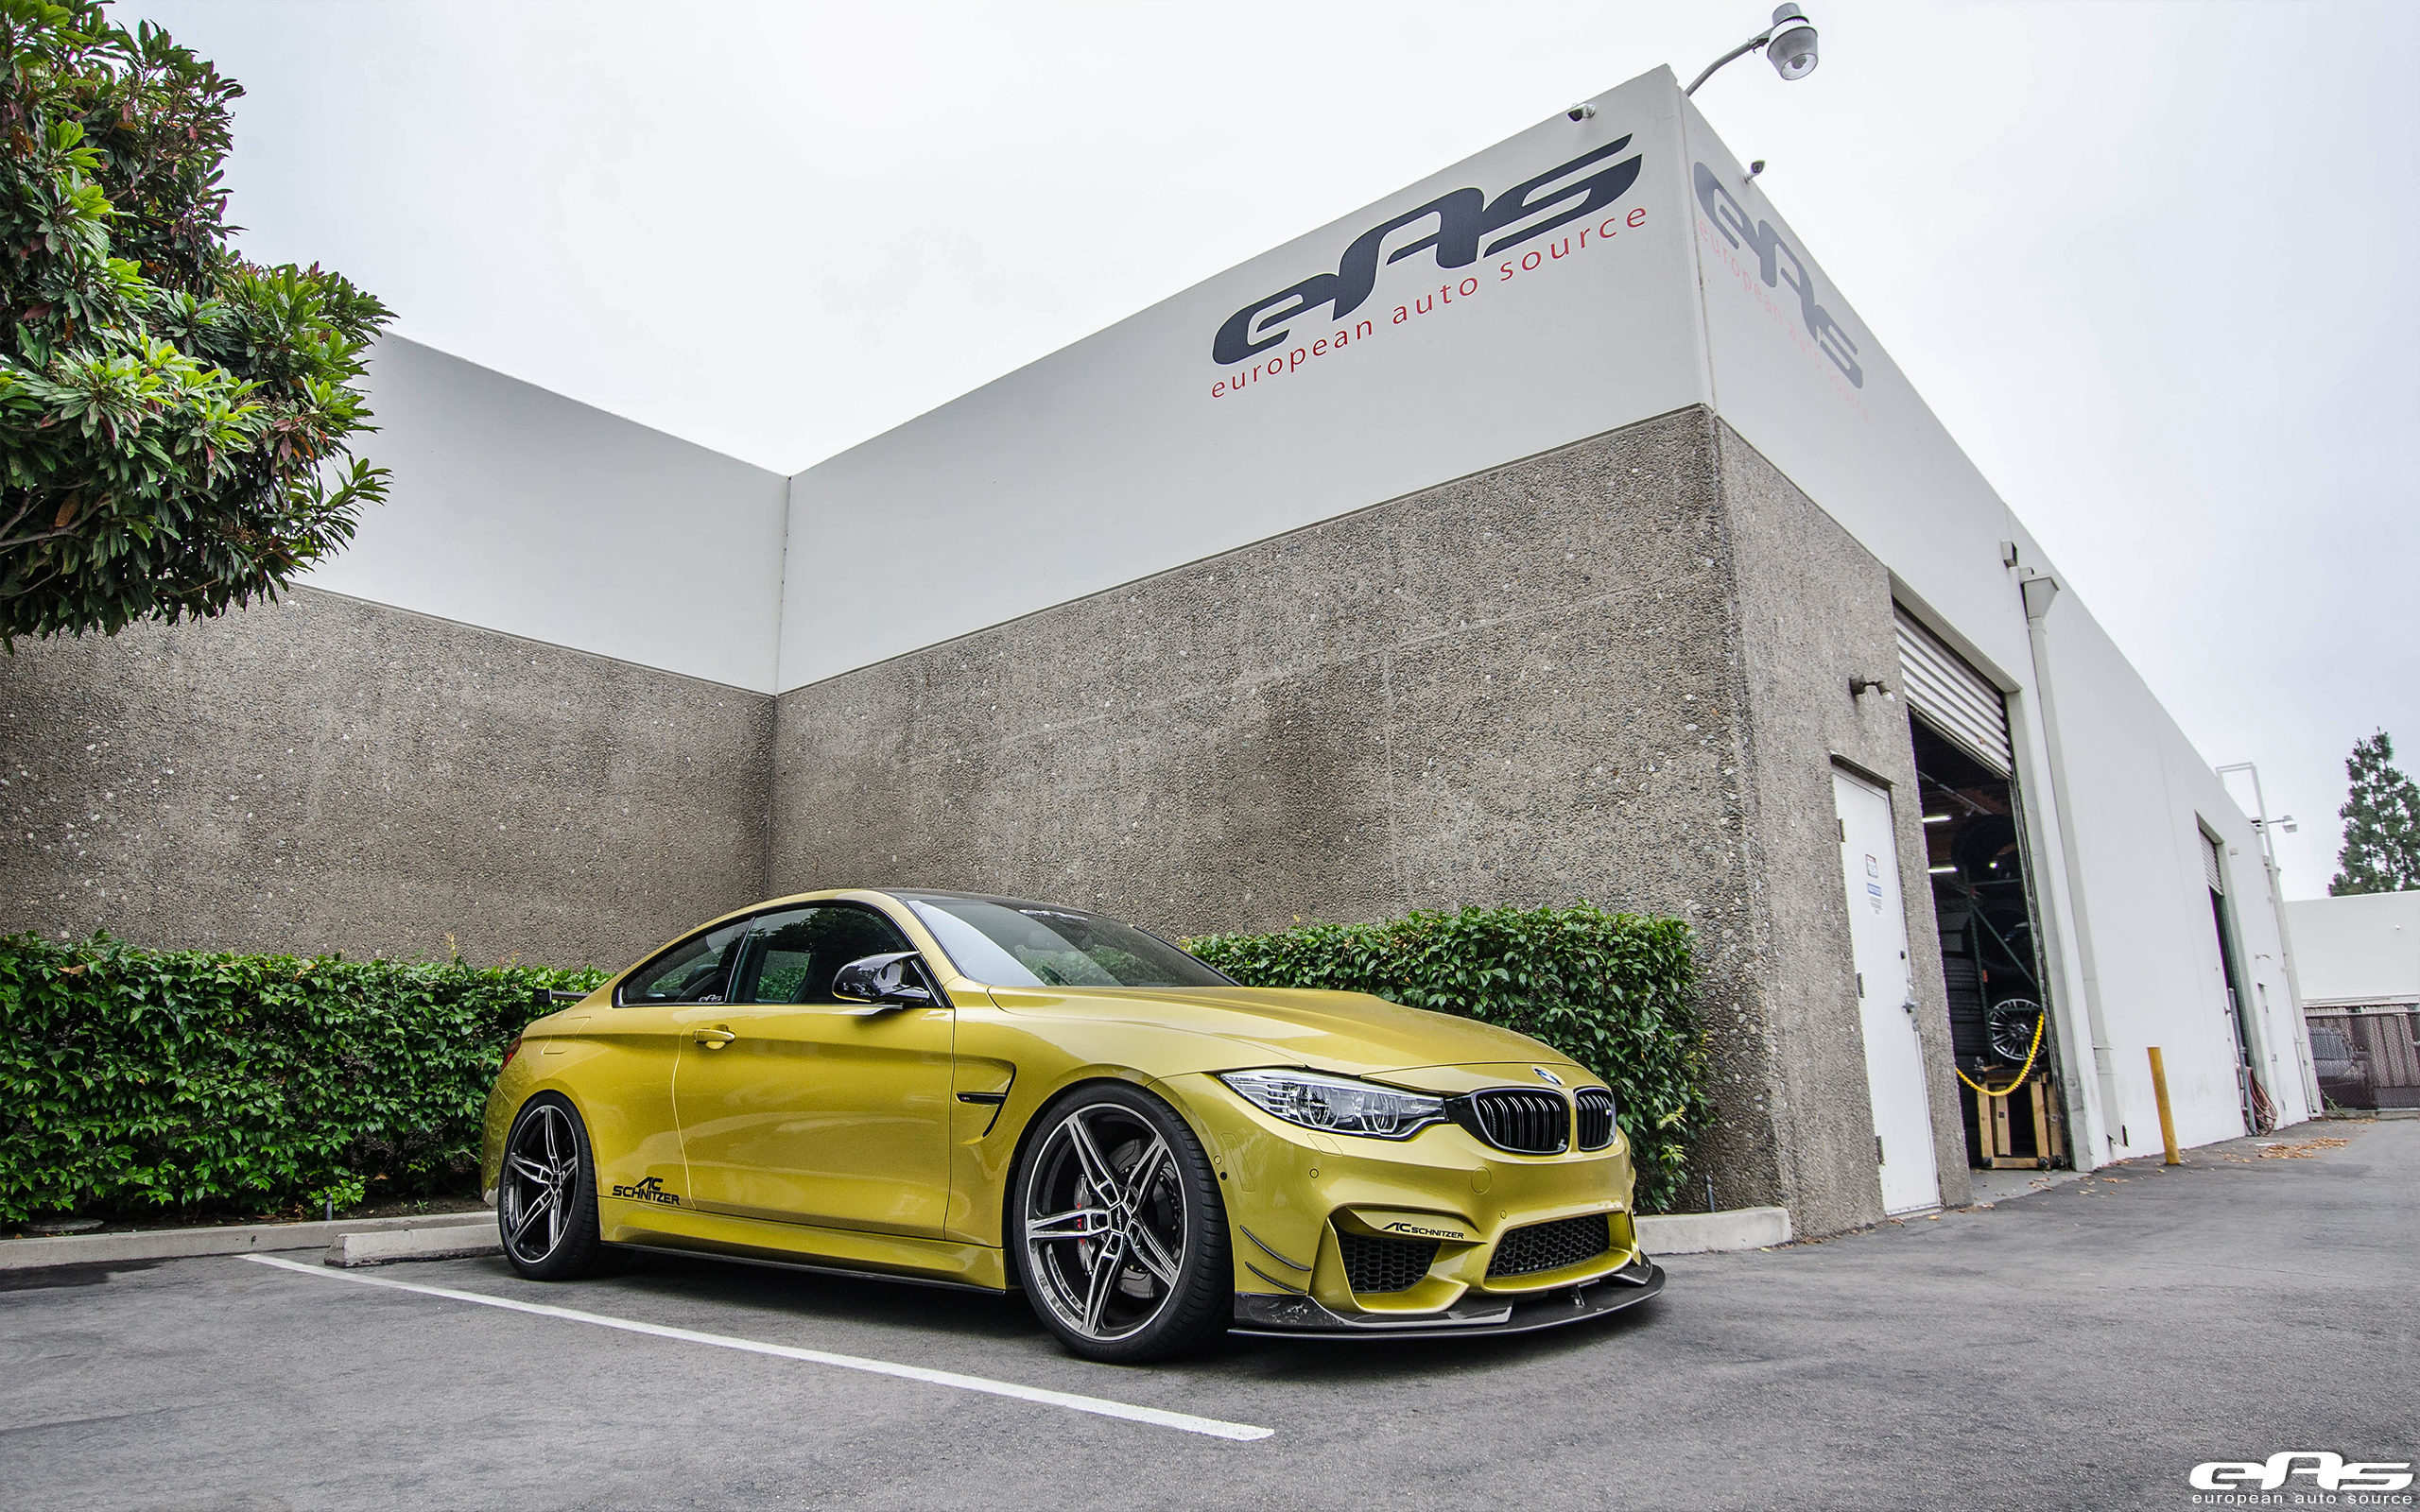 European auto source bmw mercedes benz performance parts the eas acs4 build is unlike anything else on the road noticeable components approaching your rearview mirror will be the acs carbon racing front spoiler vanachro Images